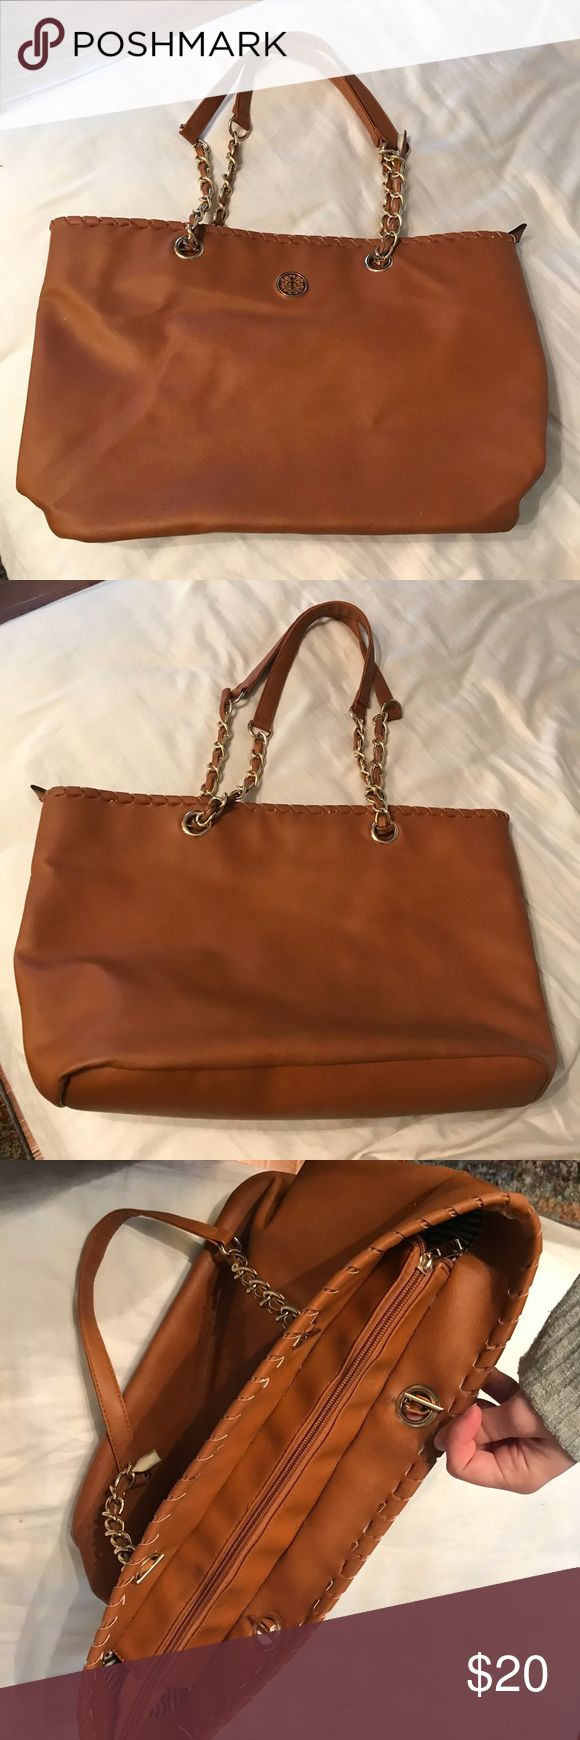 Tan Purse Fashionable and professional tan purse, zipper to close, striped interior with pockets and zipper pocket inside. Sometimes the arm straps come out of the little hole clasps, but other than that it's a great Purse! I'm unsure of the brand, no tags on it. Bags Totes